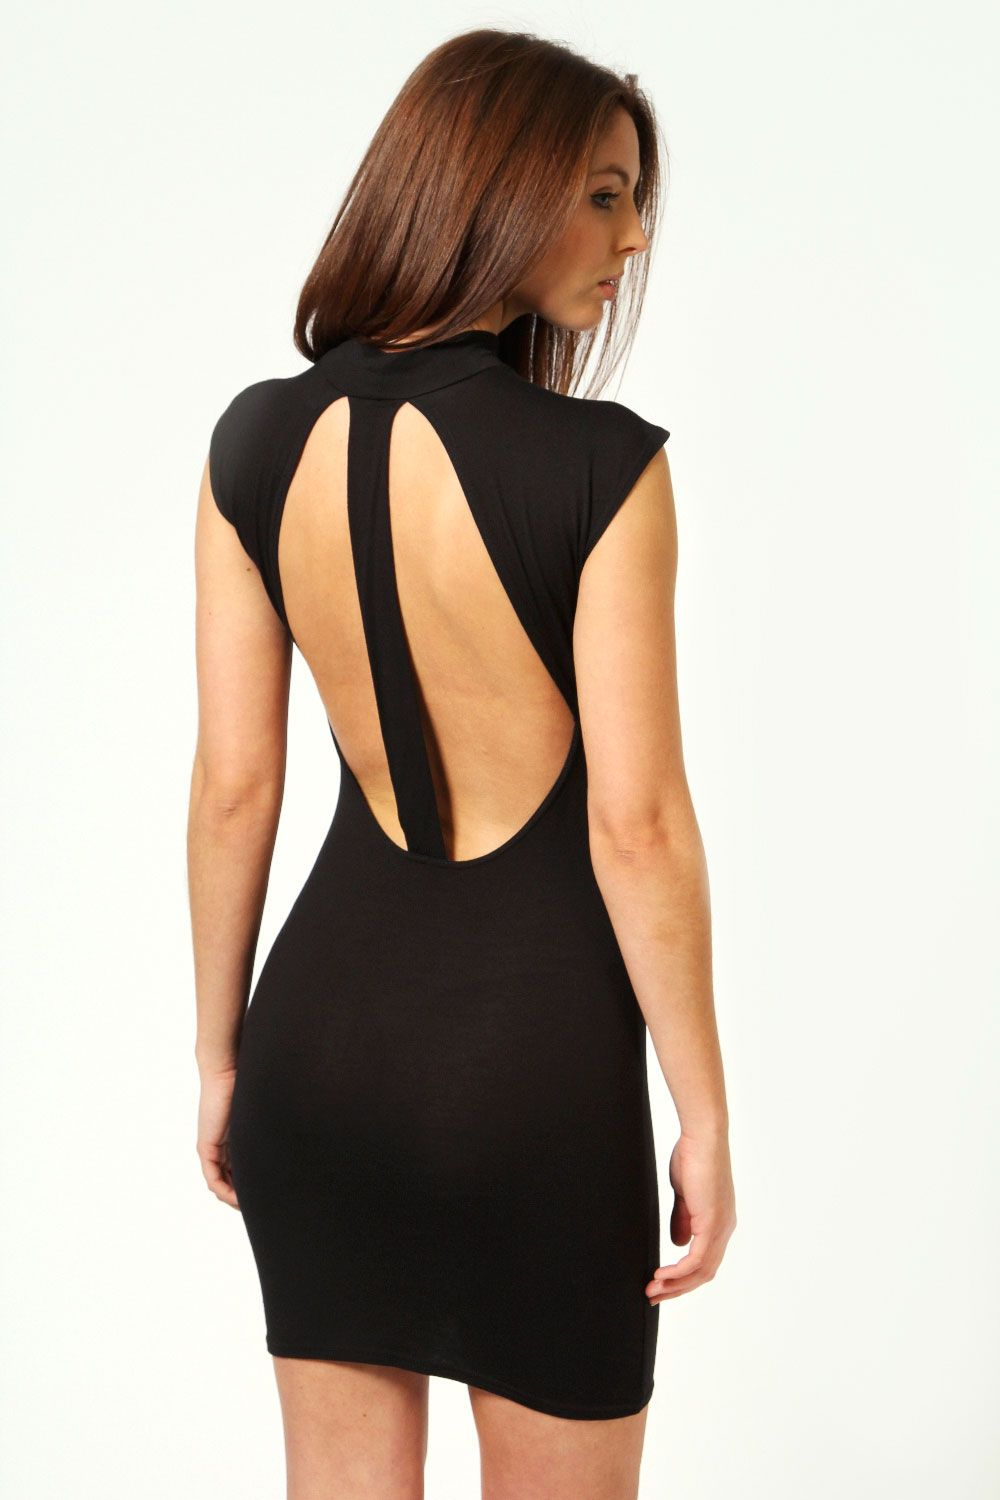 Claire open back detail bodycon dress backs with openings